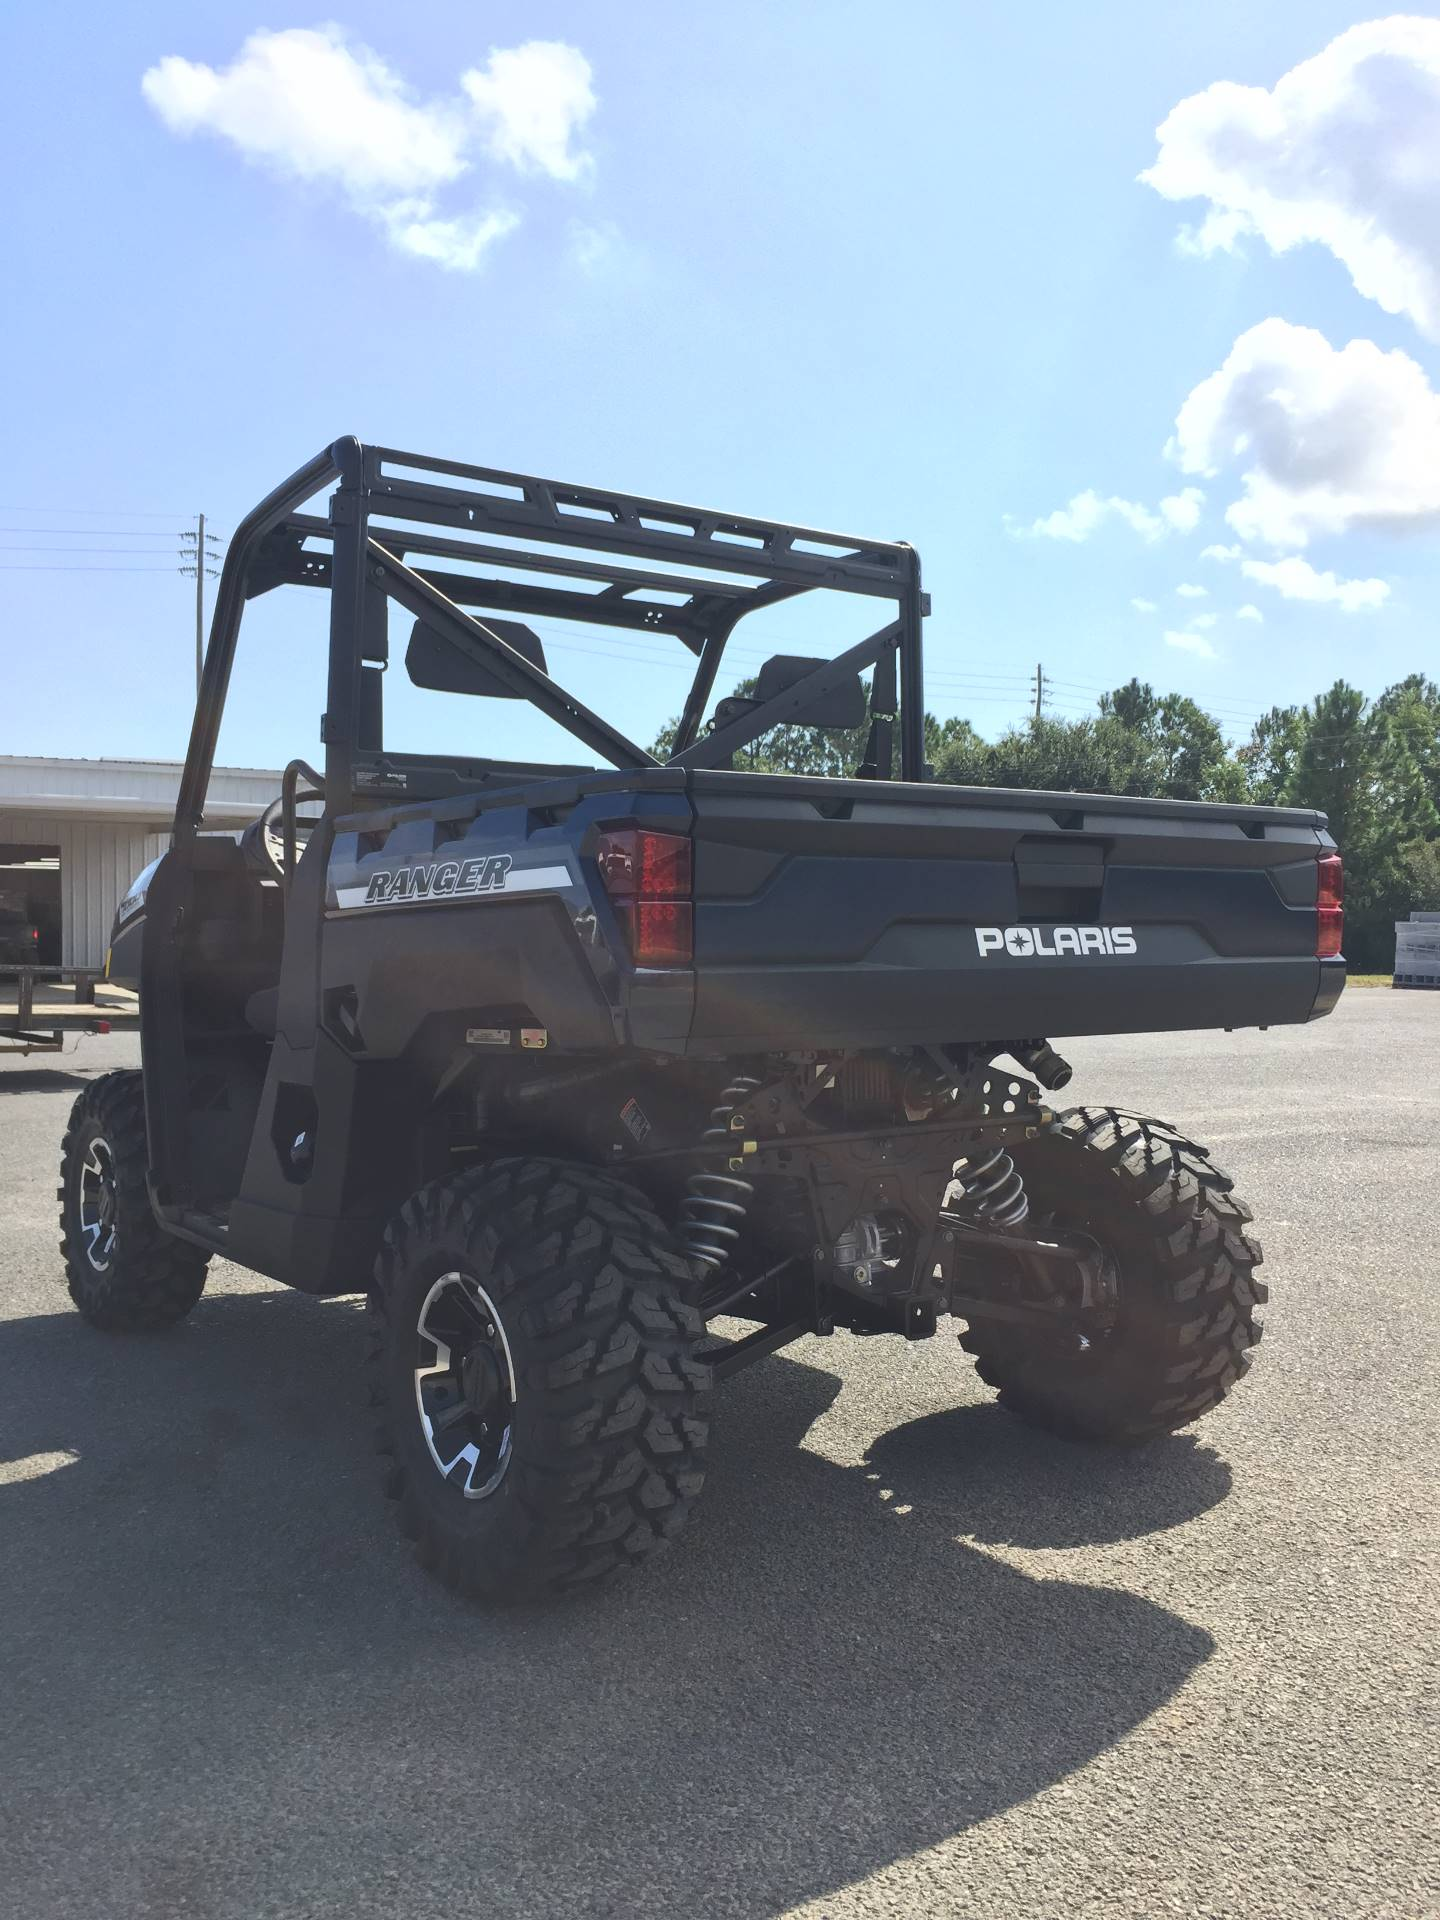 2020 Polaris Ranger XP 1000 Premium in Pascagoula, Mississippi - Photo 1